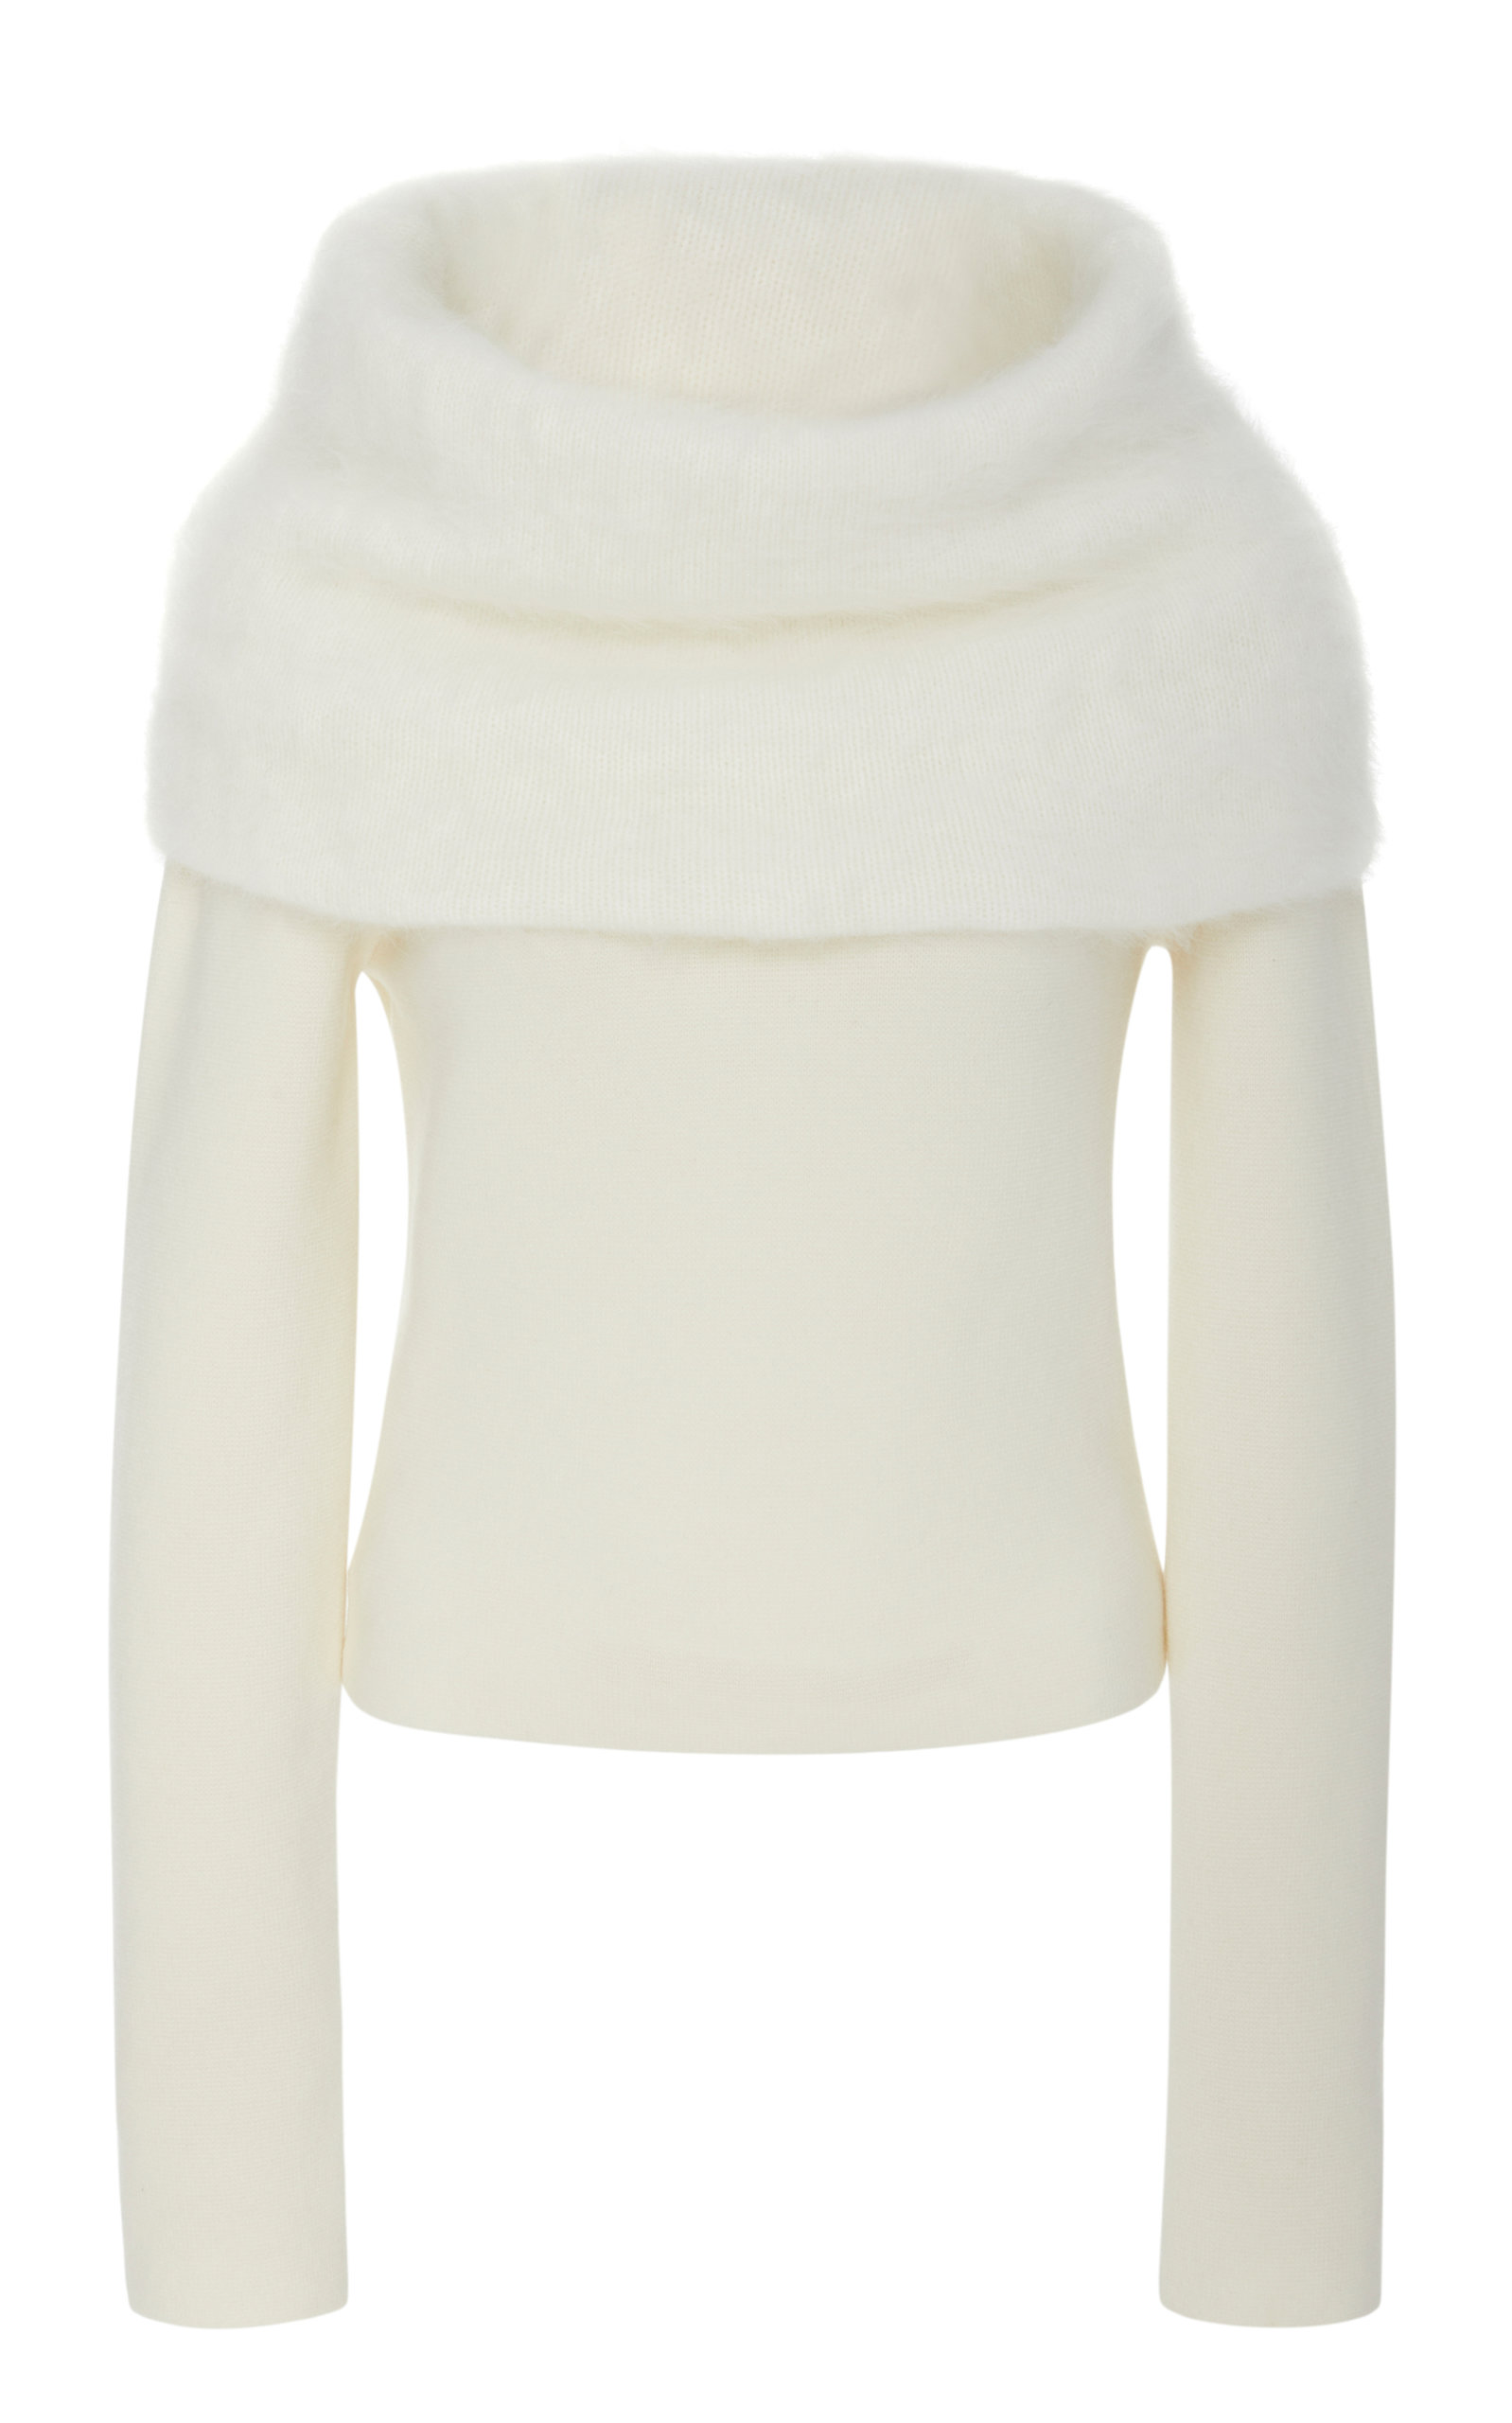 YEON M'O Exclusive Ileana Knitted Sweater in White